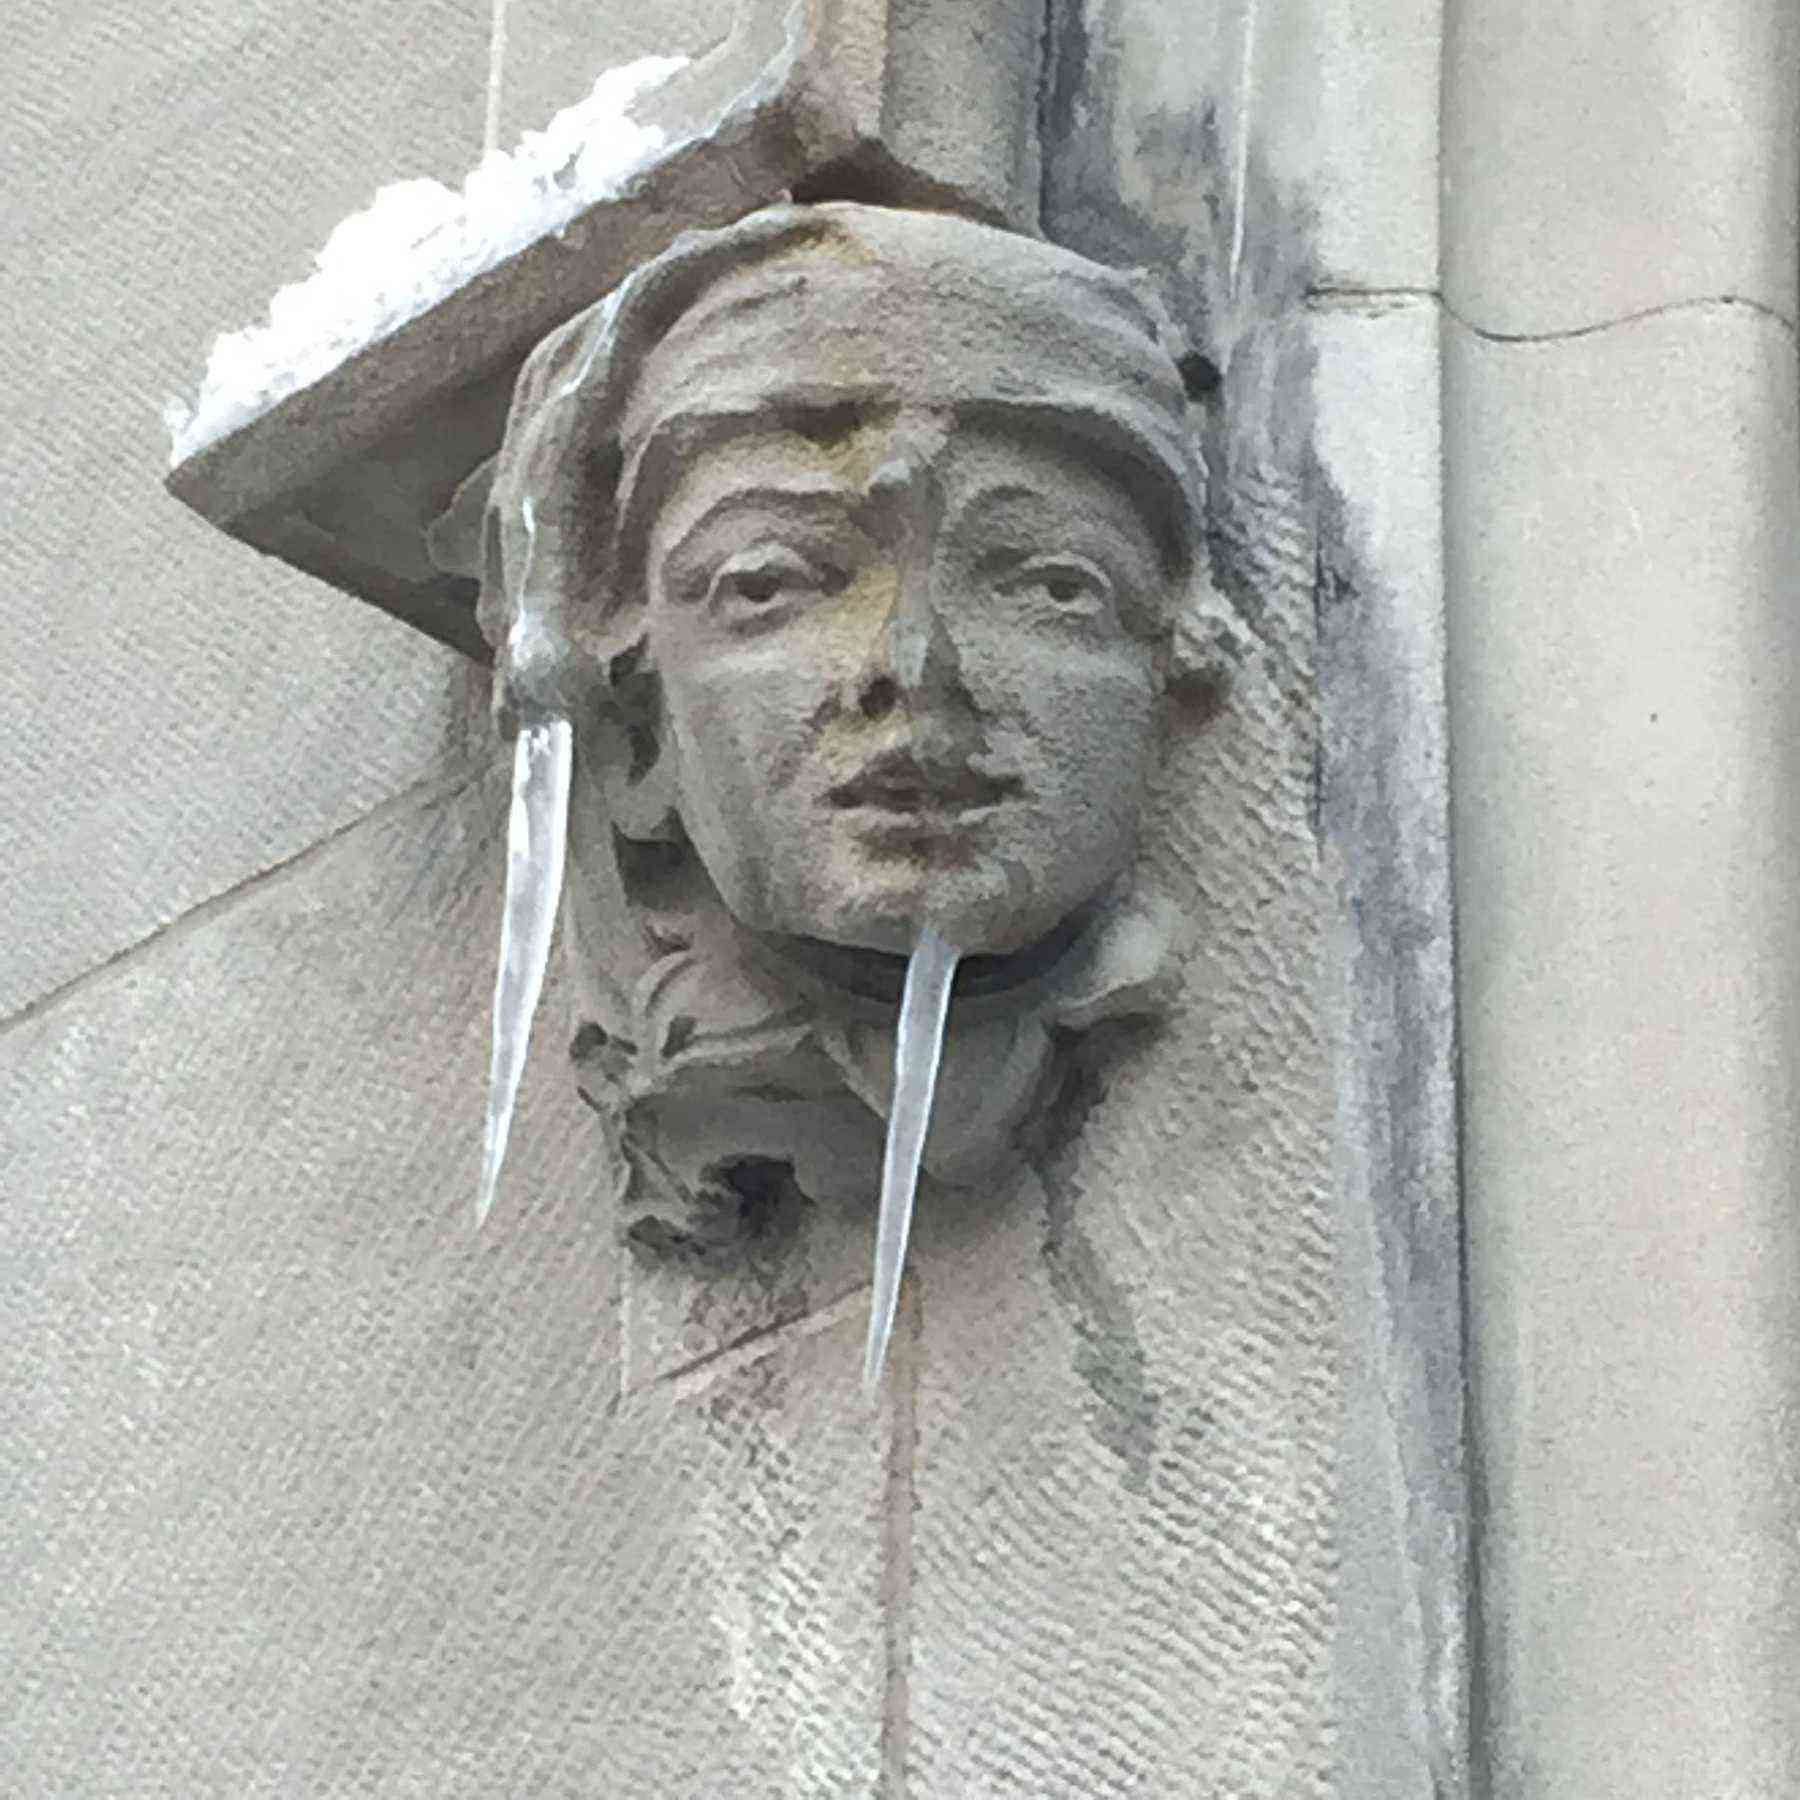 7) Jewish National Fund icicle gargoyle, 42 E 69th St